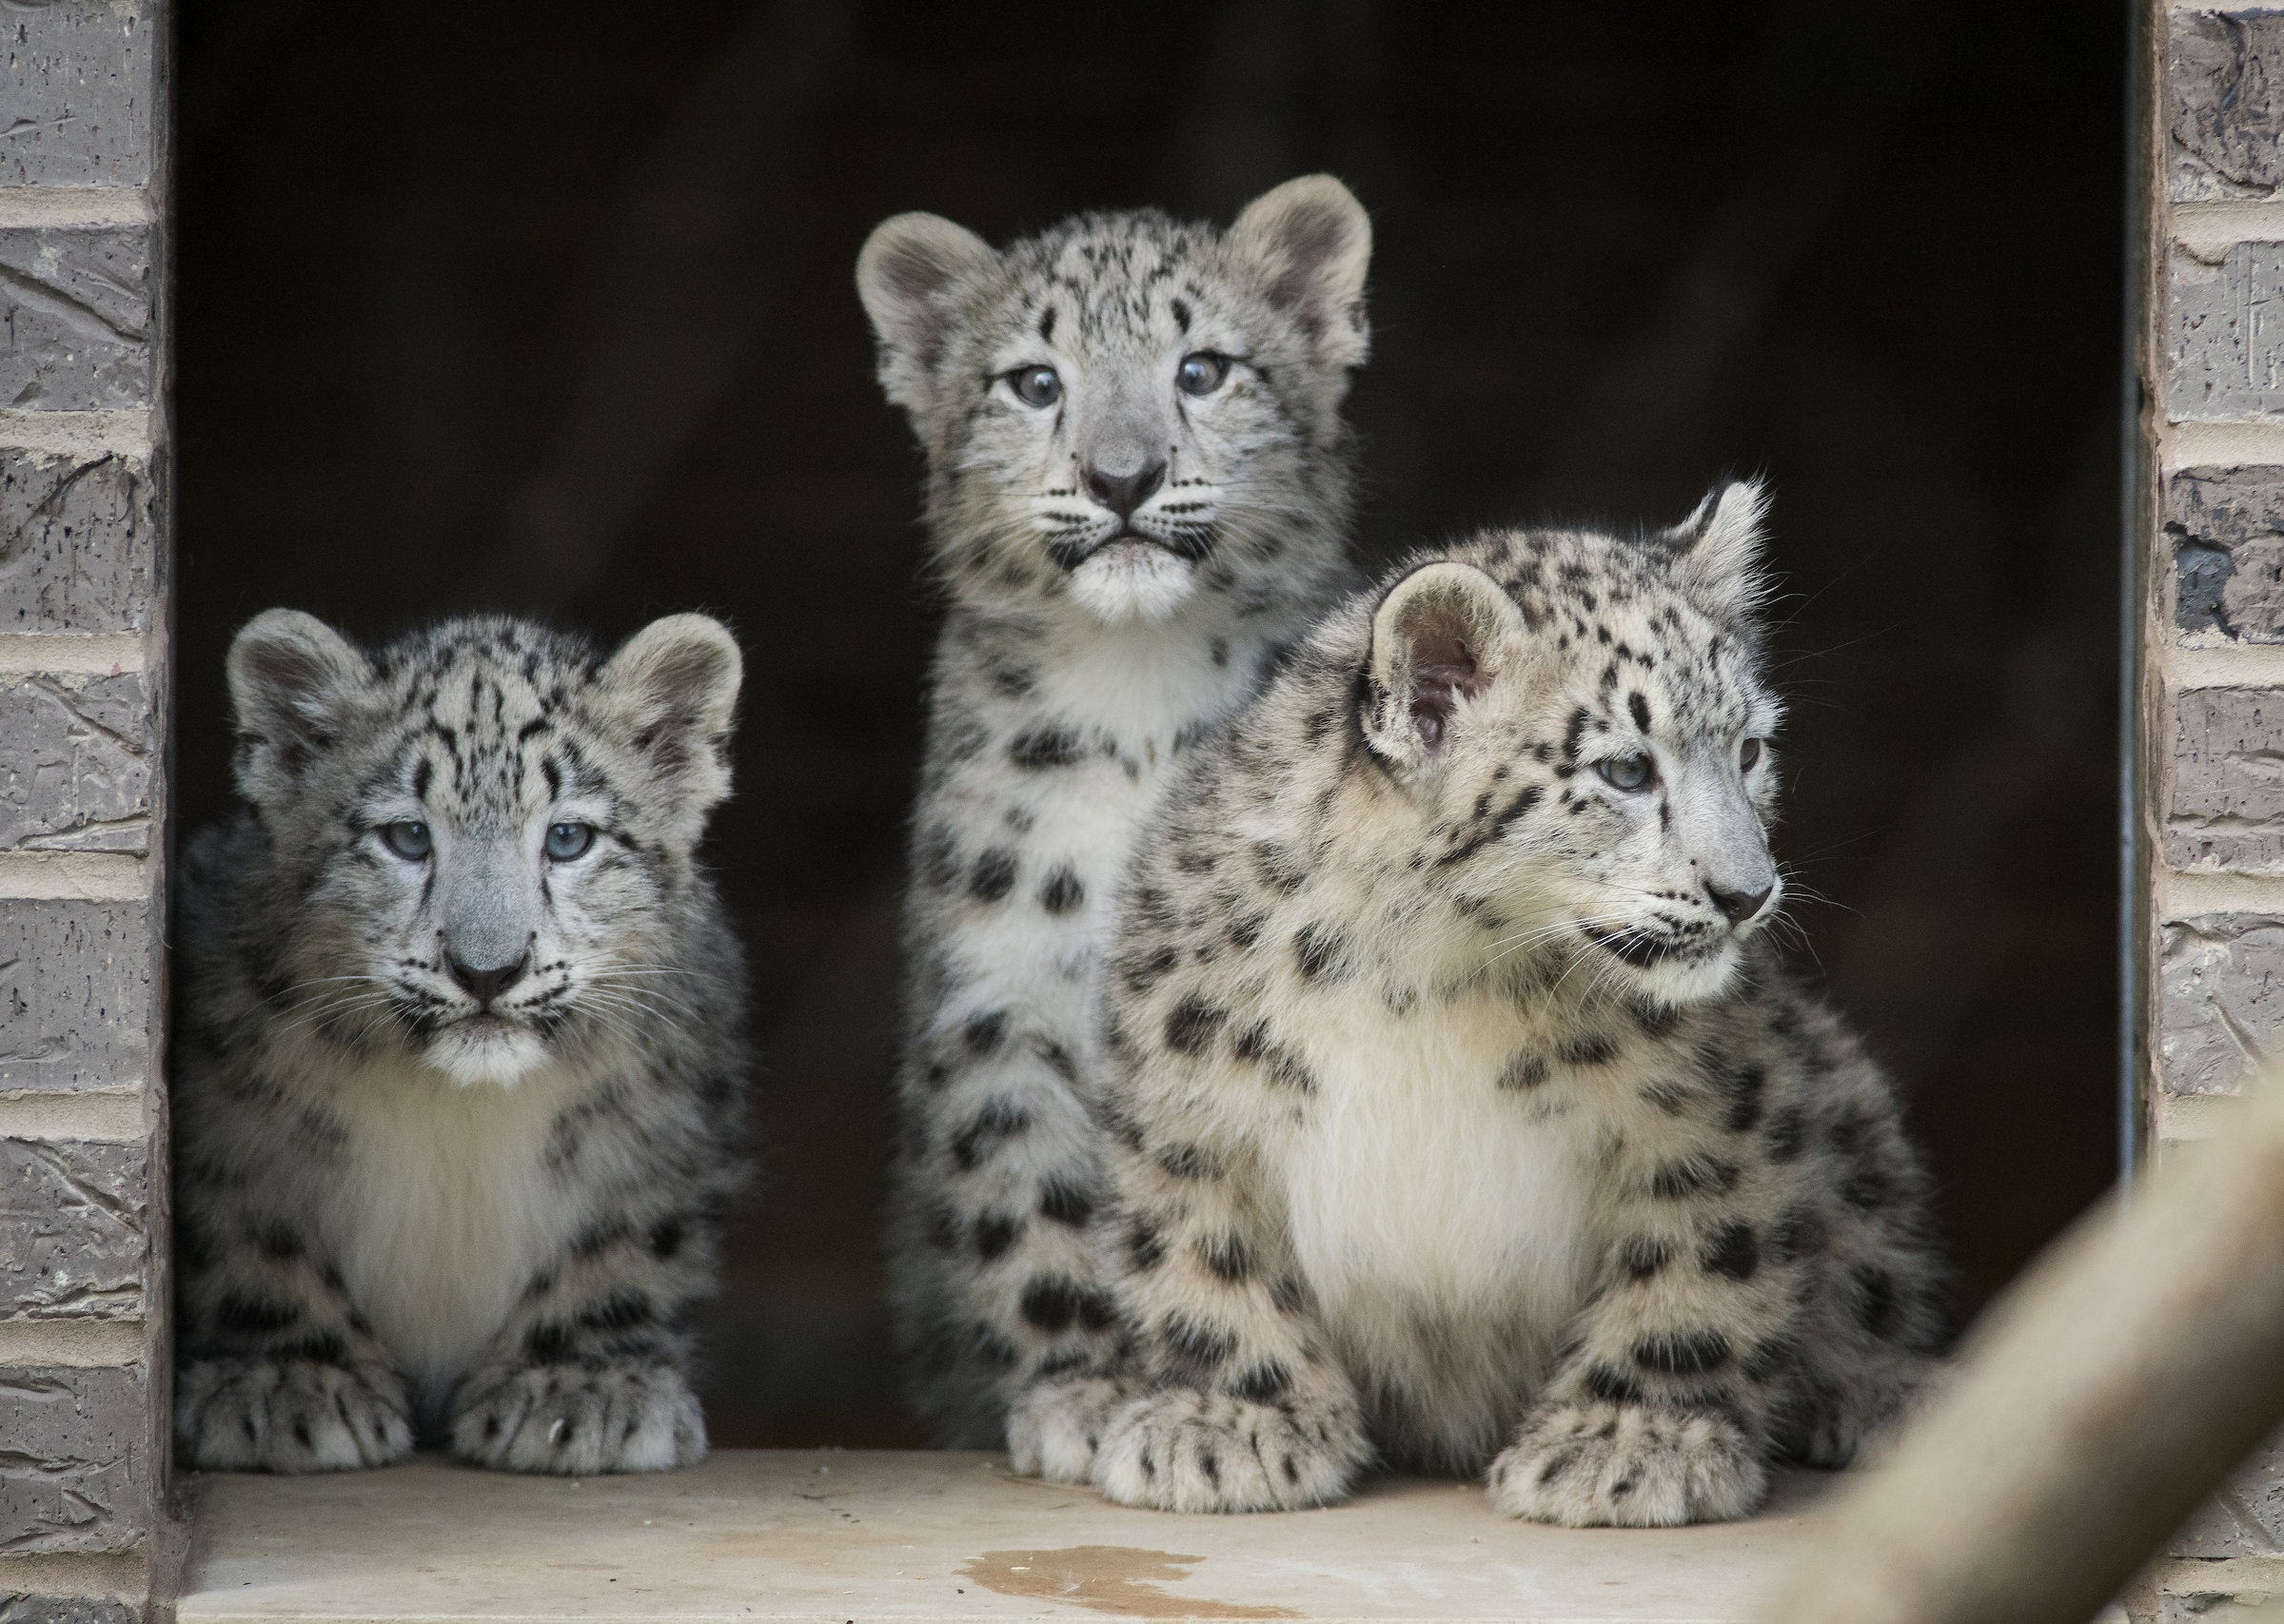 Cleveland Metroparks Zoo Announces Naming Opportunity for Snow Leopard Triplets